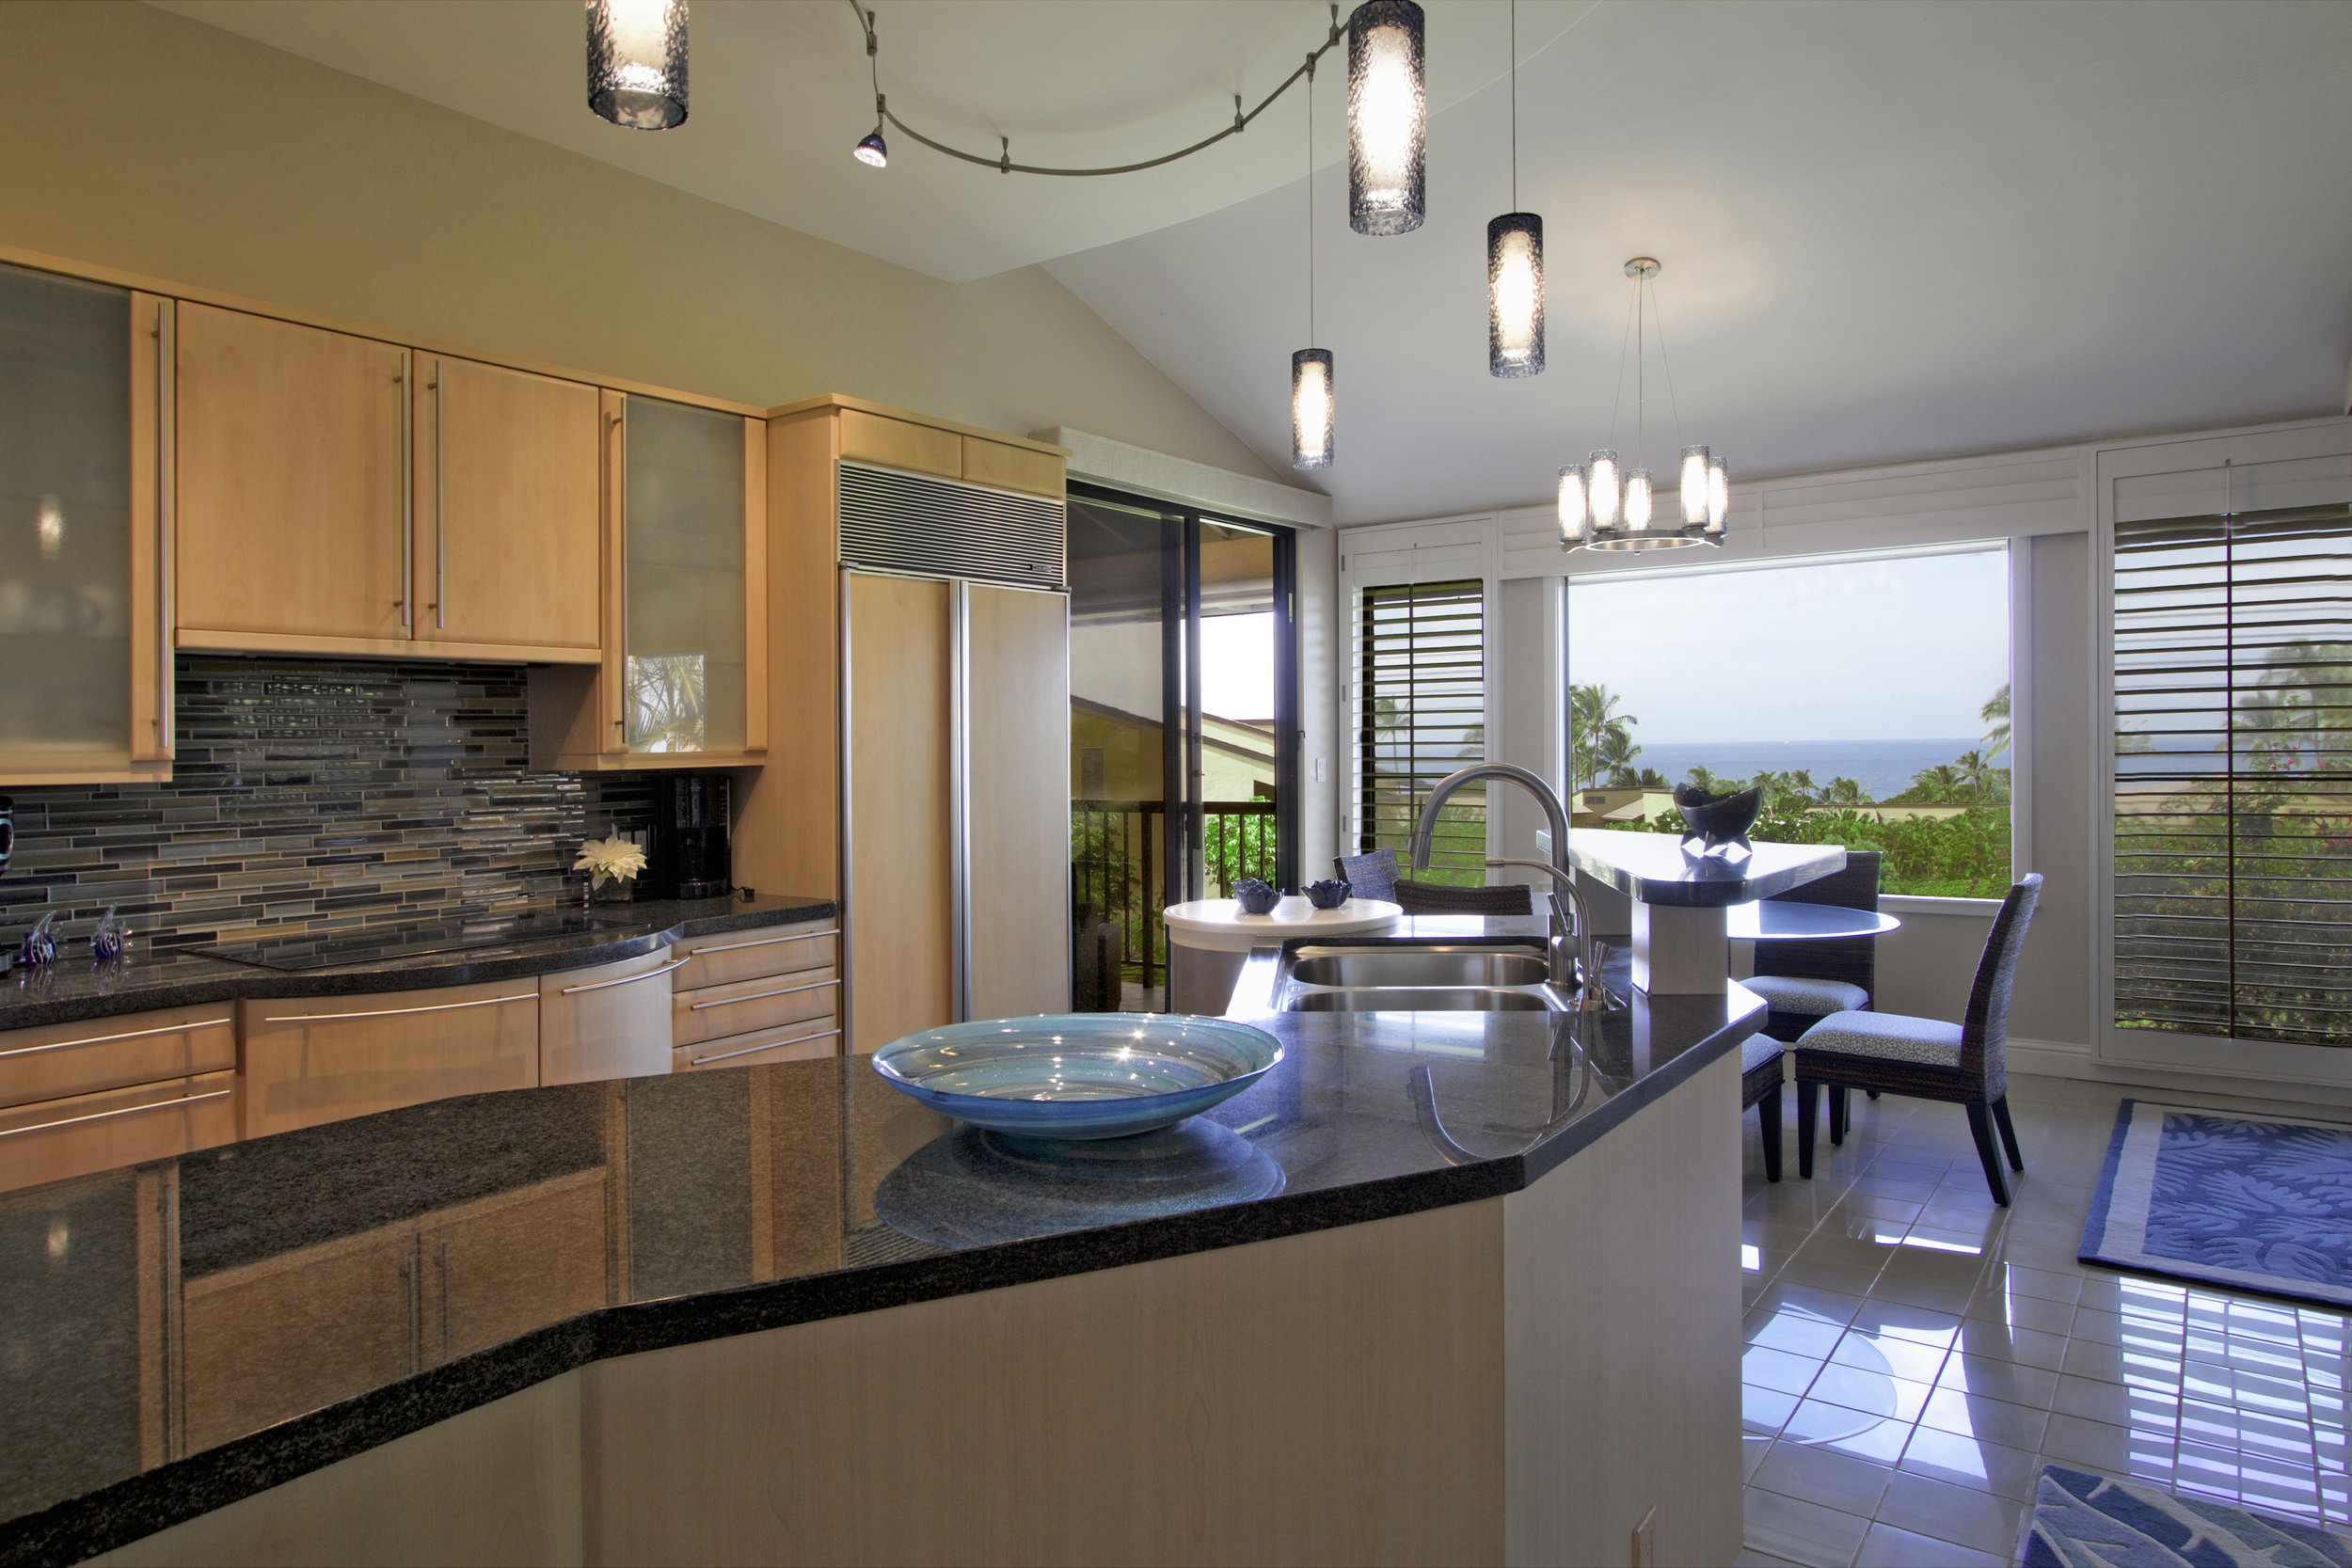 A fully-stocked kitchen, with a view